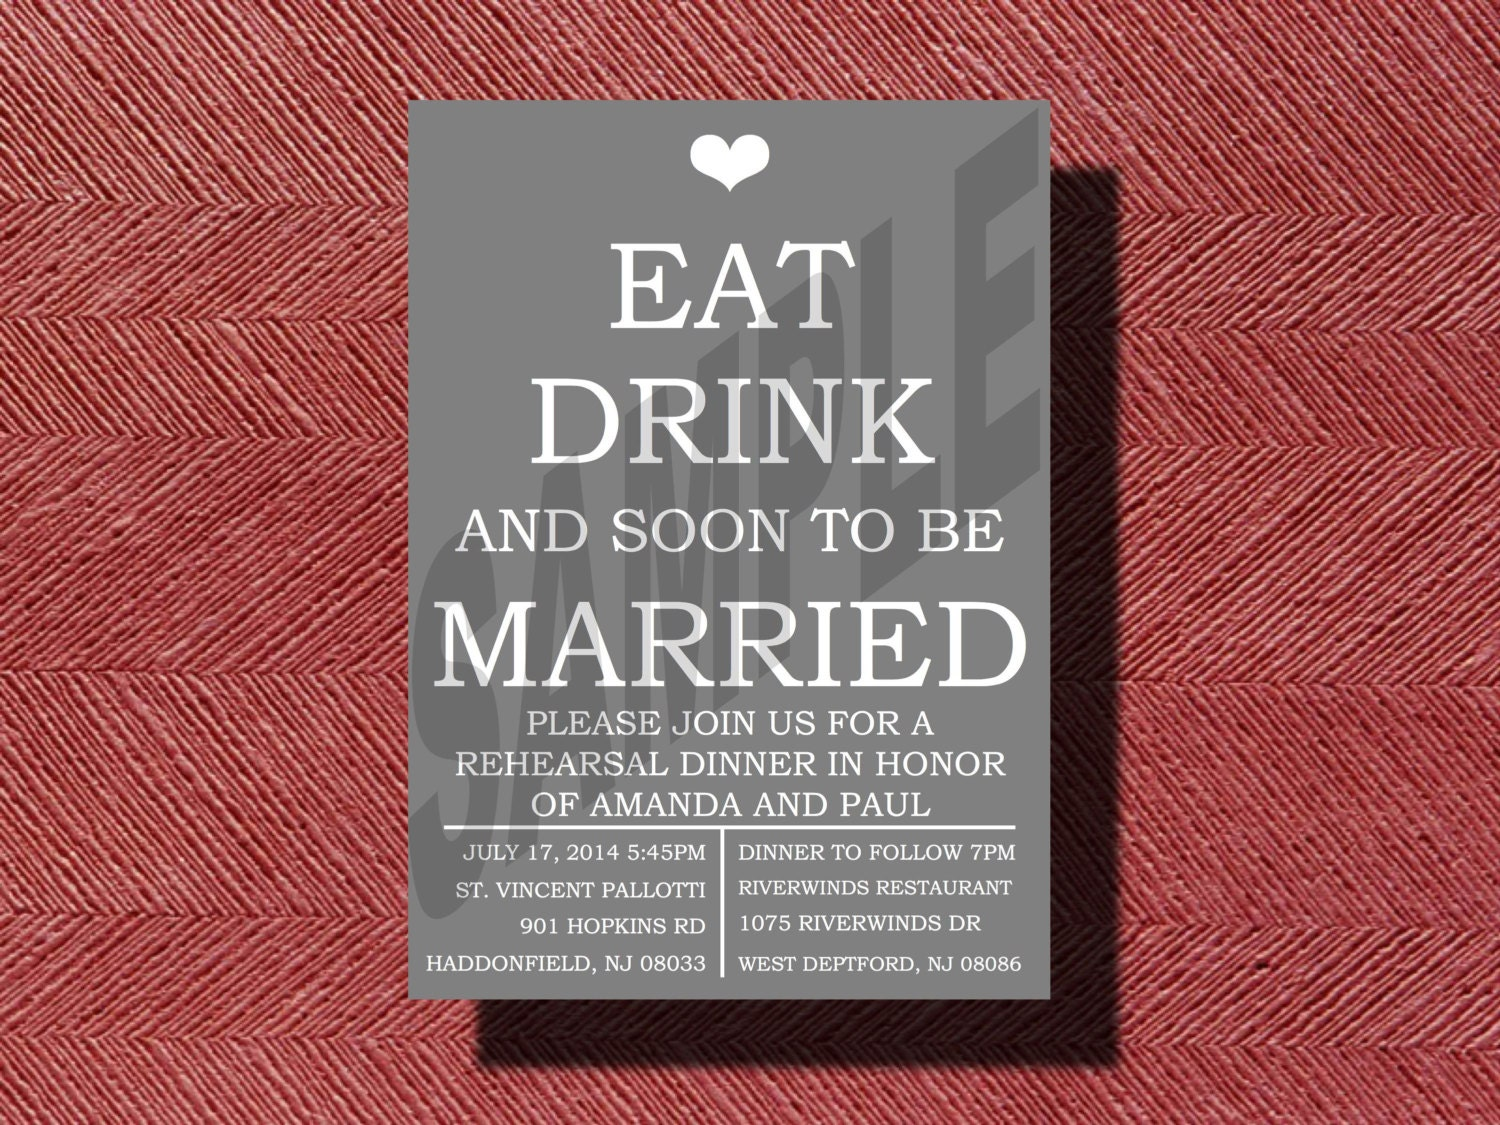 Eat Drink and Soon To Be Married Rehearsal Dinner Invitation | Etsy